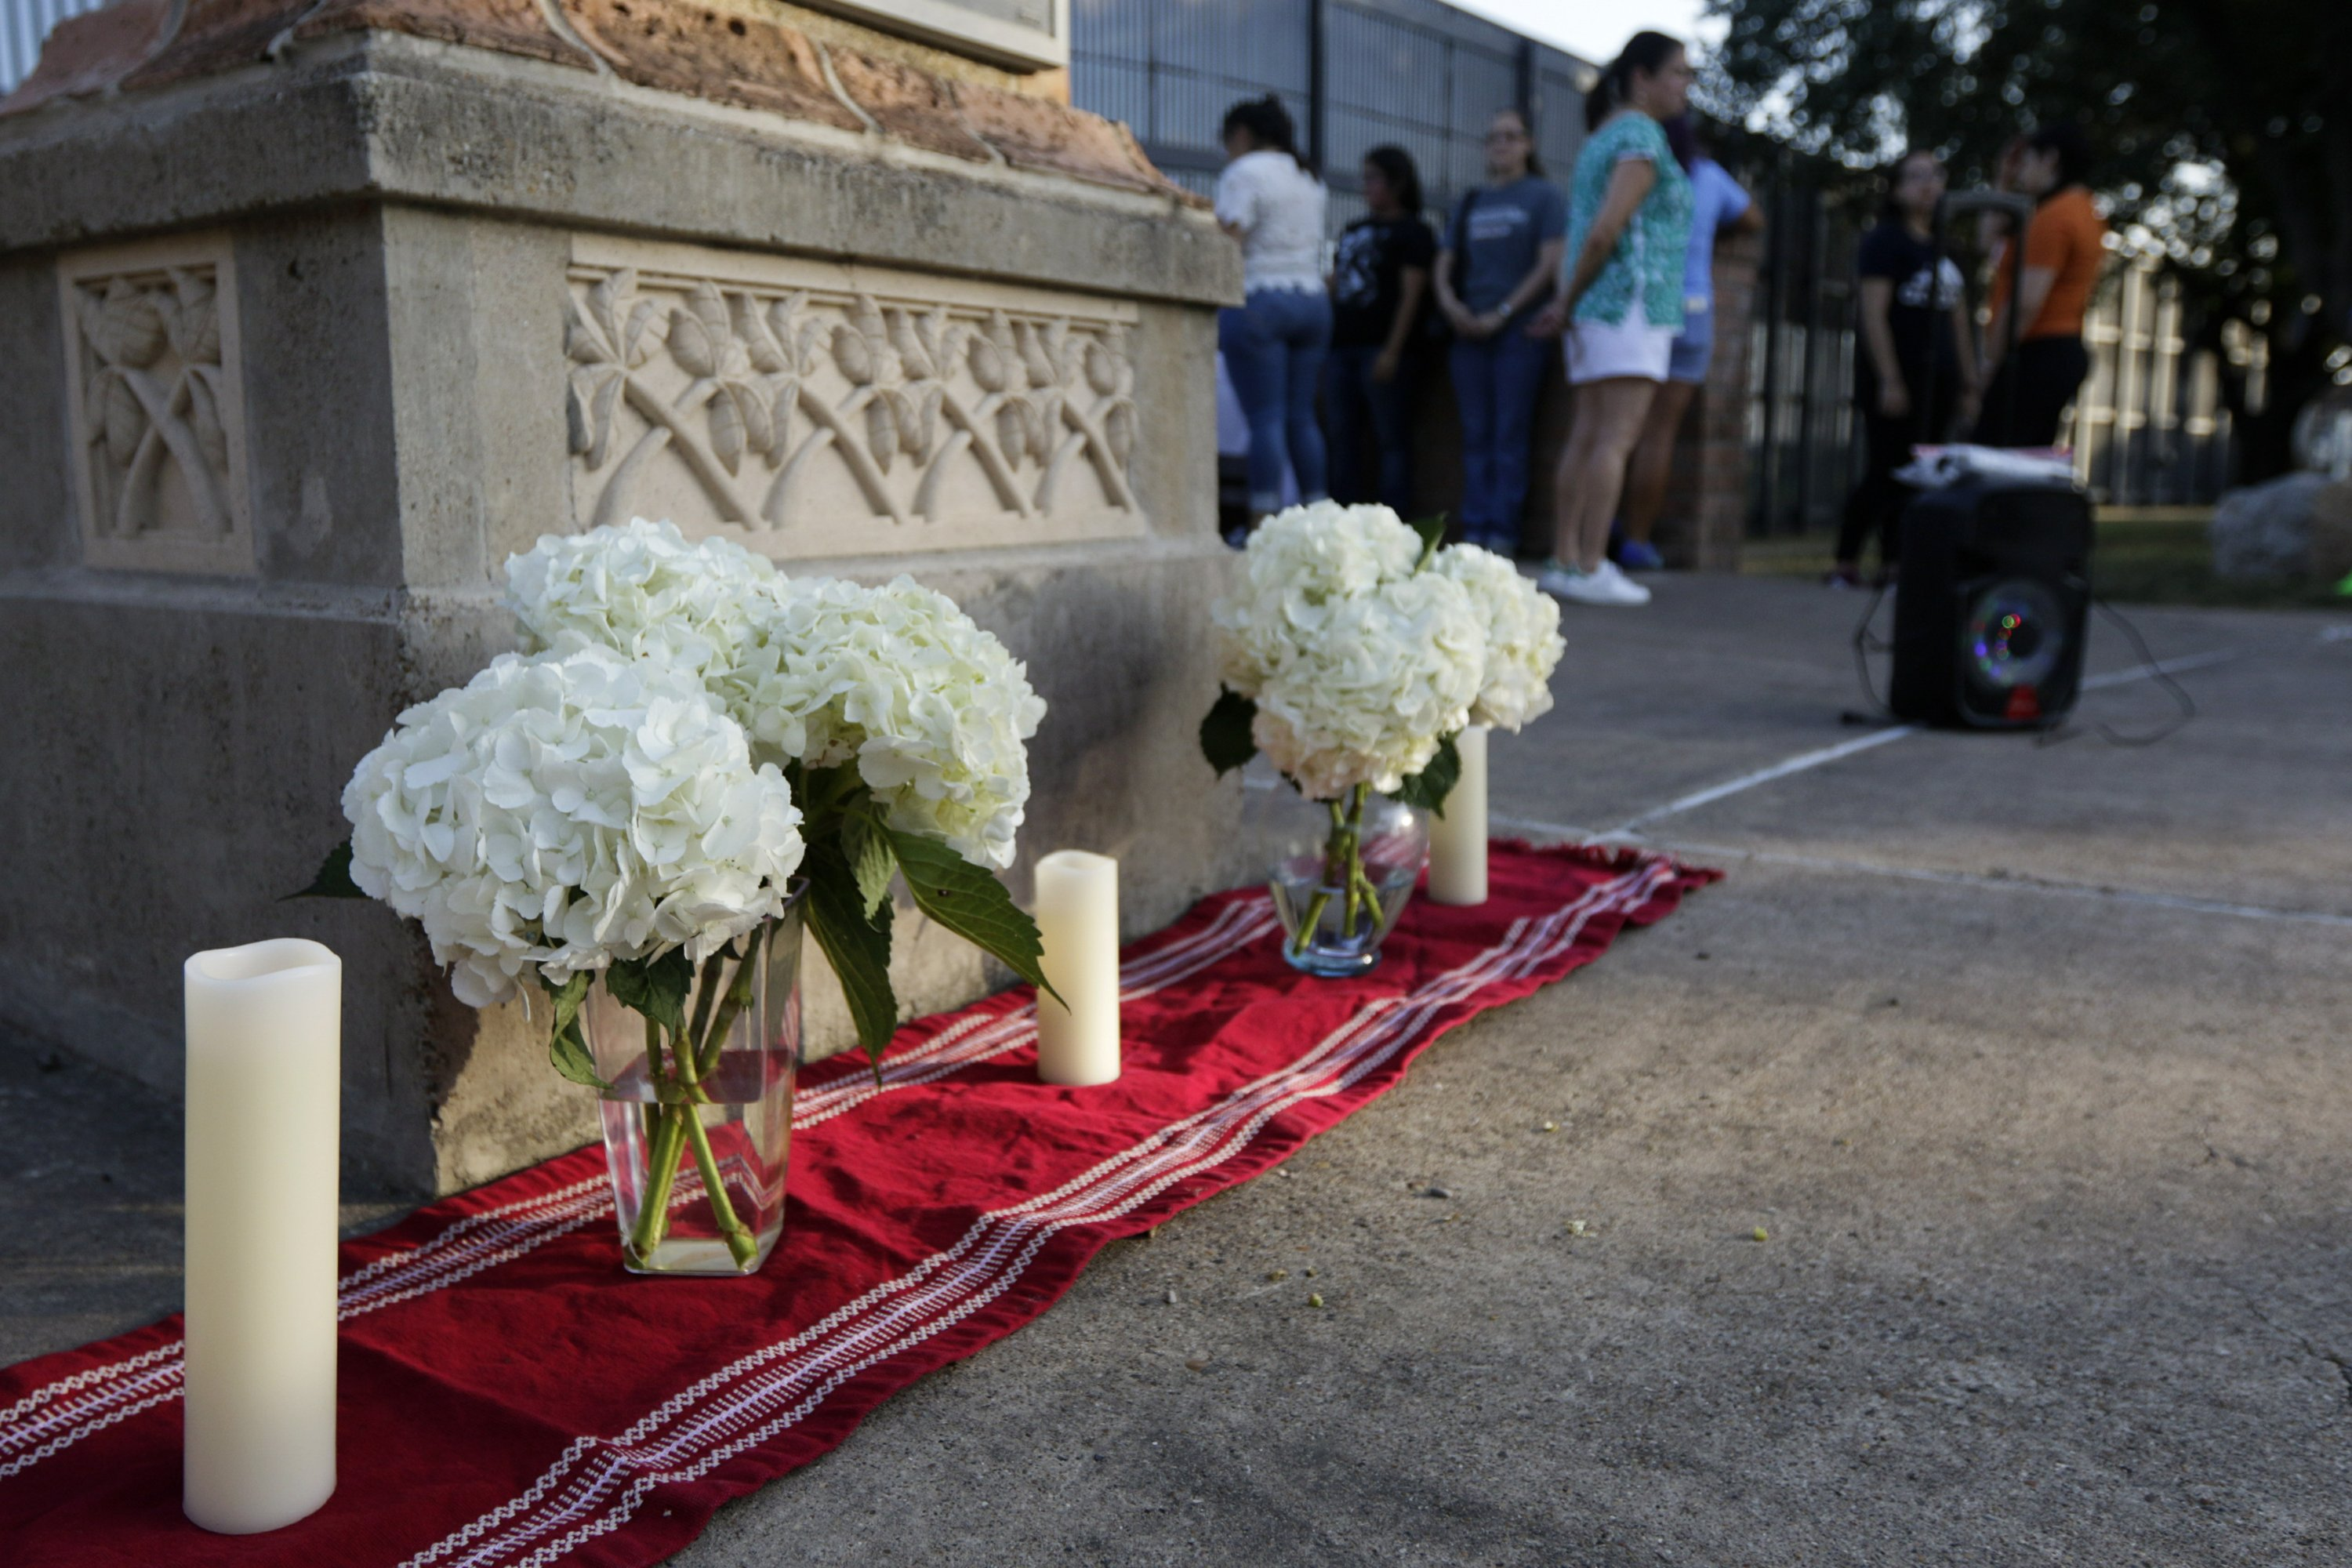 'El Paso strong': Public memorial to honor shooting victims